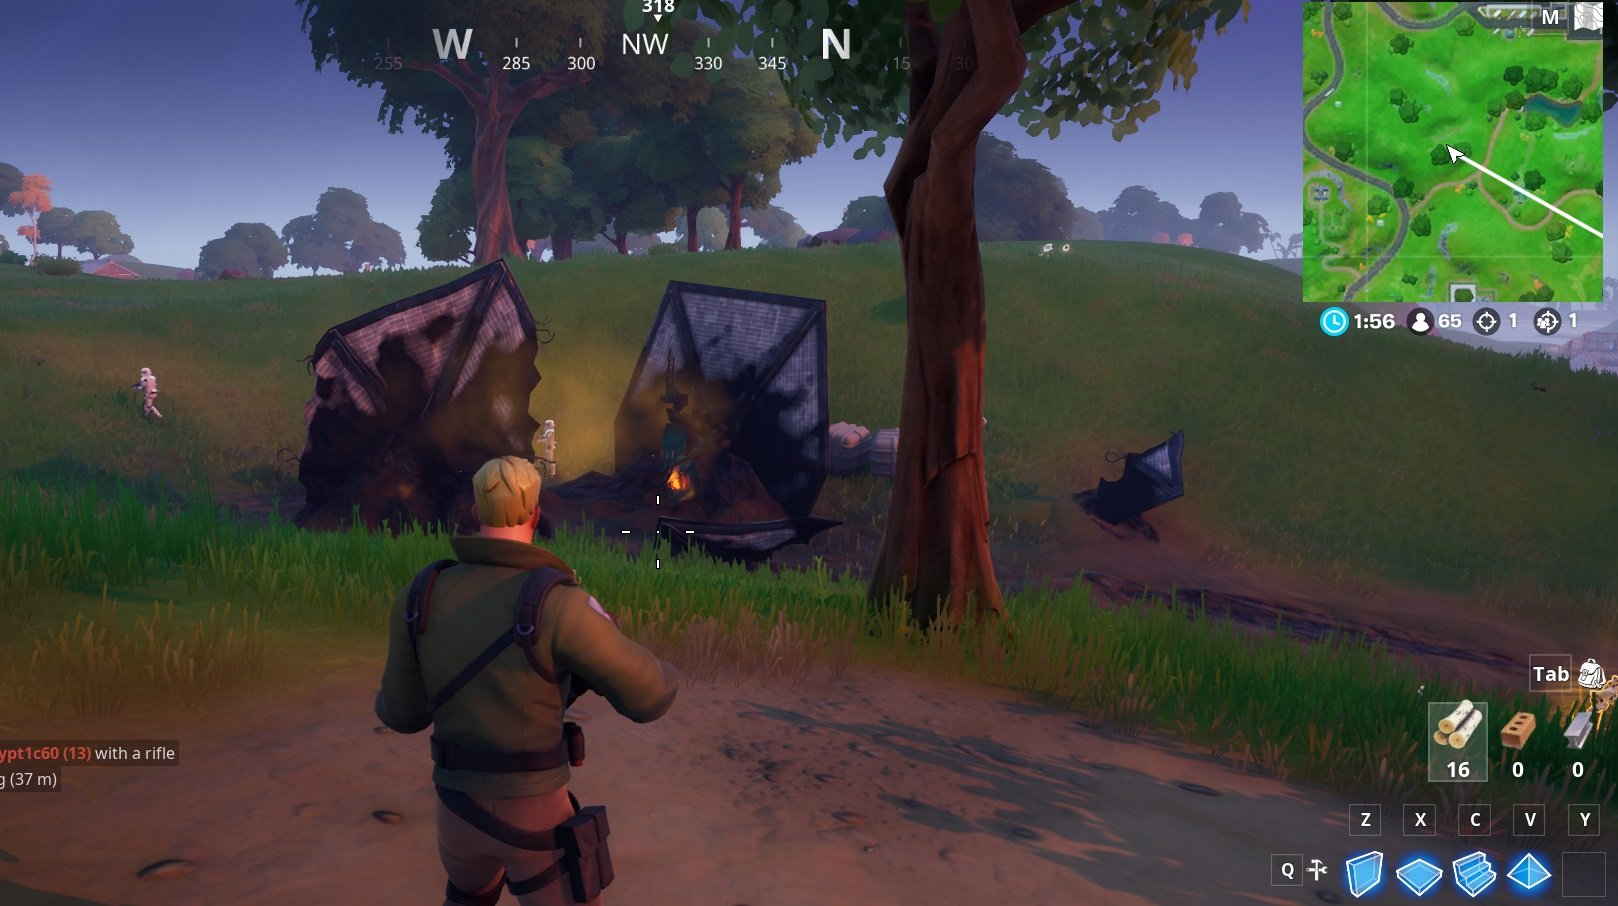 Where to find TIE Fighter crash sites in Fortnite